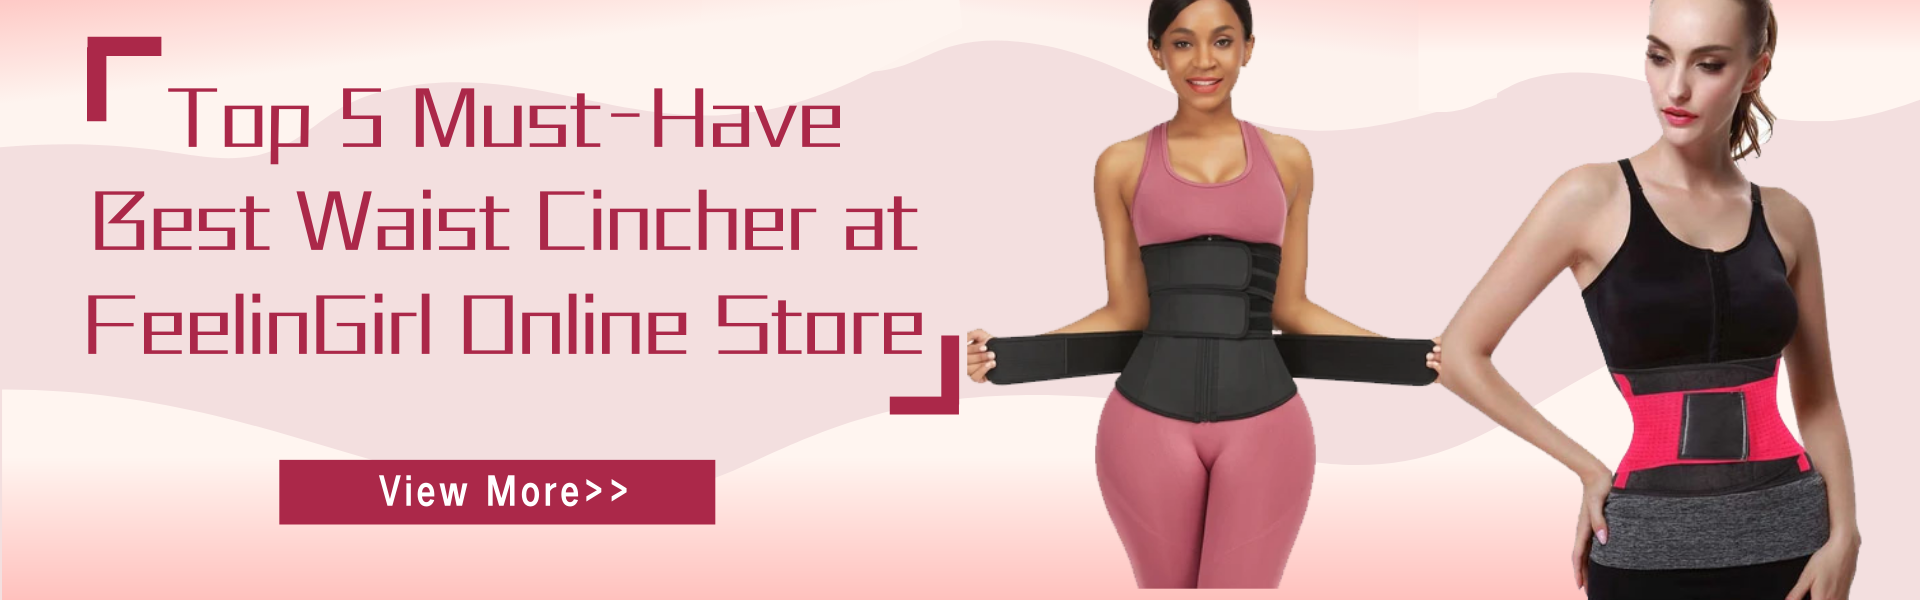 Top 5 Must-Have Best Waist Cincher at FeelinGirl Online Store